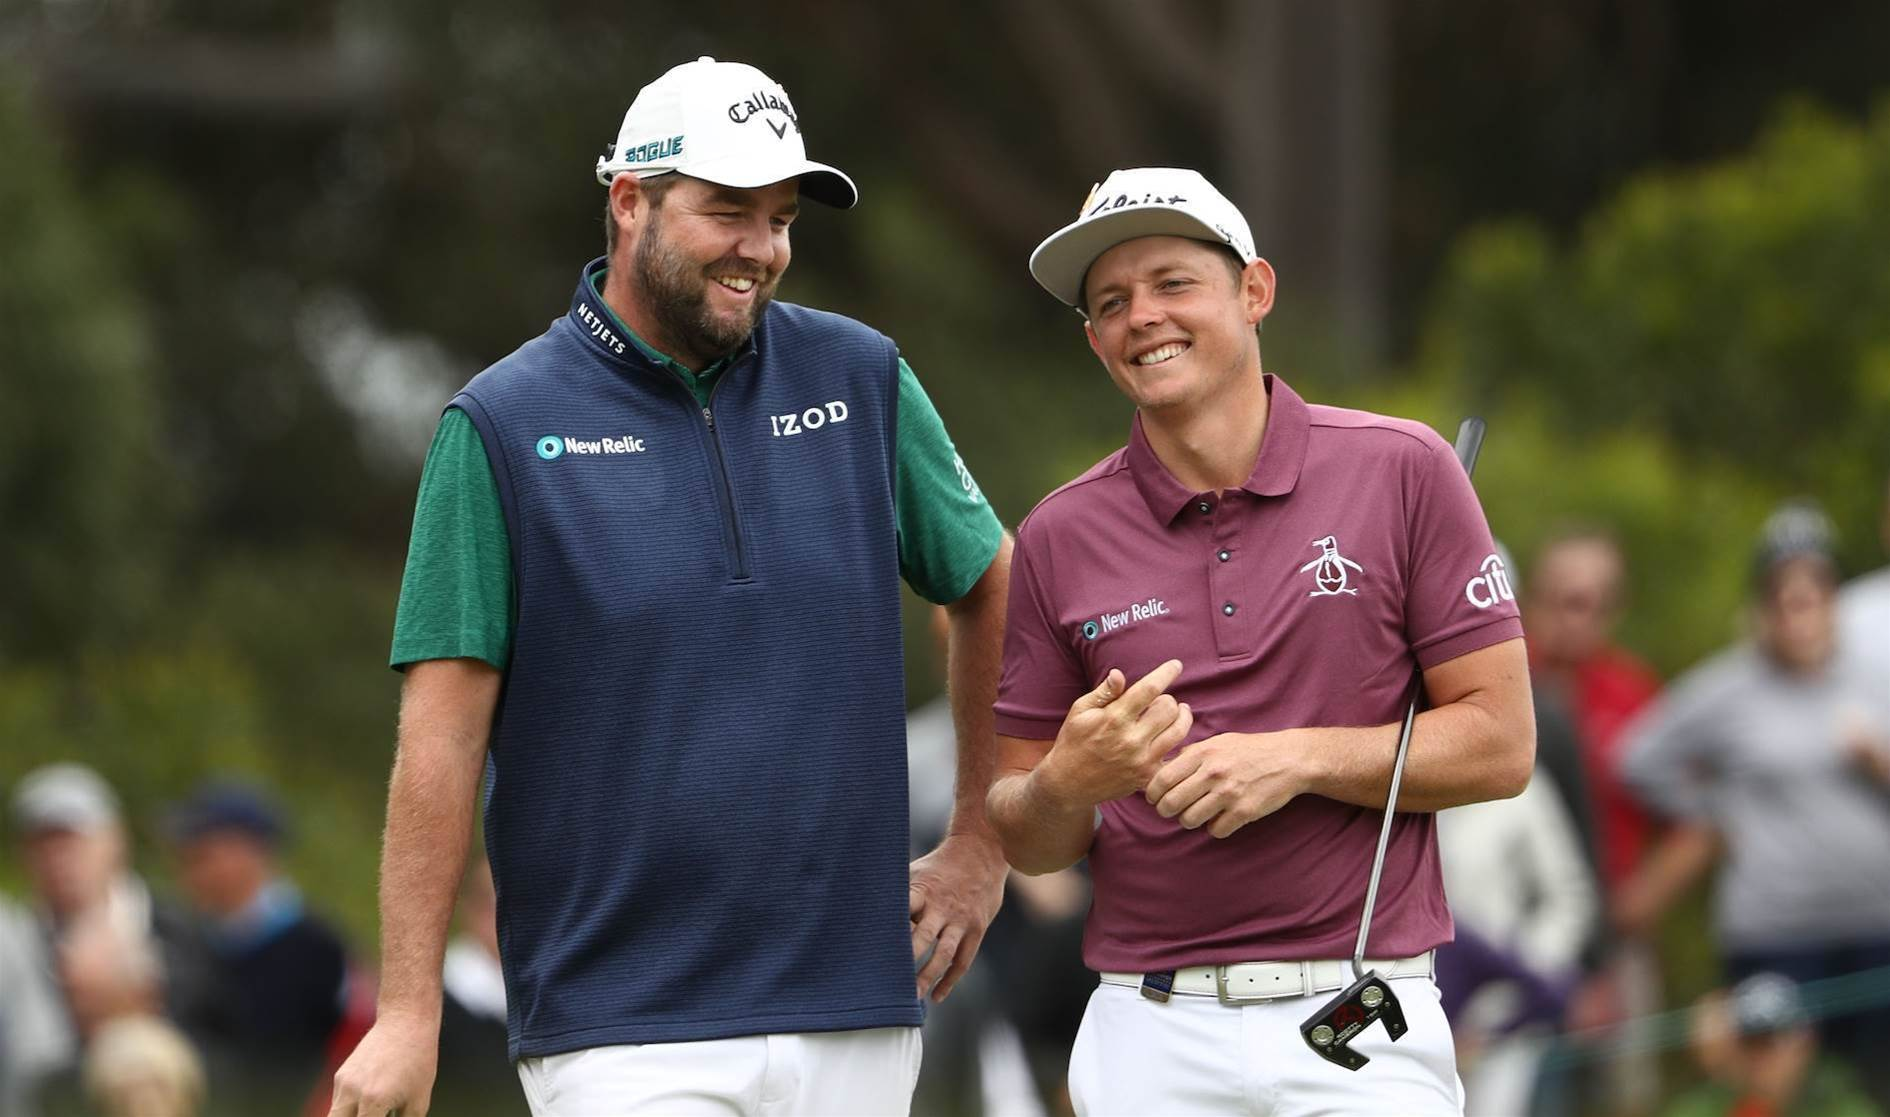 Leishman and Smith ready for major glory